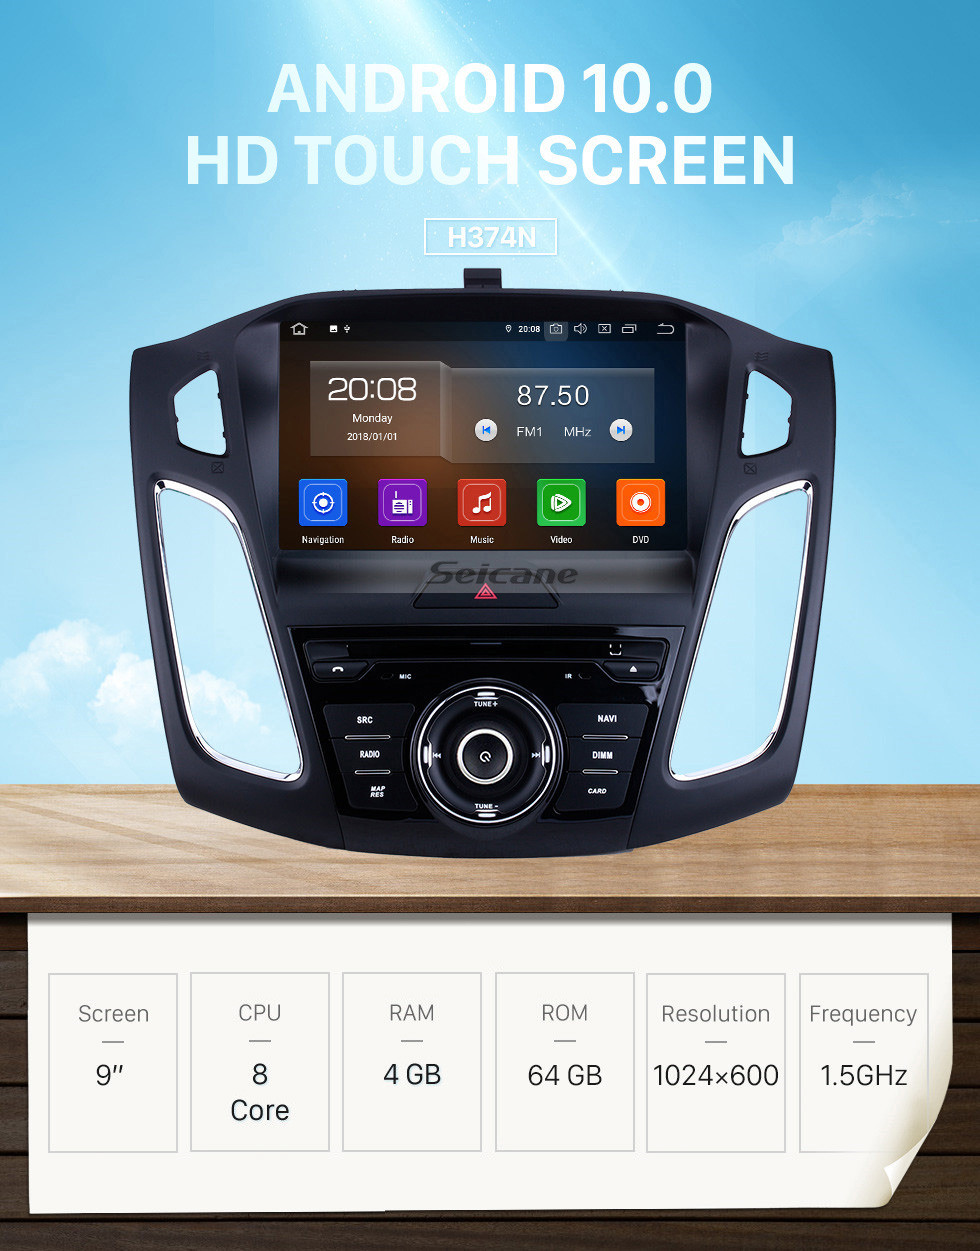 Seicane OEM 9 inch Android 10.0 for 2015 Ford Focus Radio Bluetooth HD Touchscreen GPS Navigation System Carplay support DVR 1080P Video